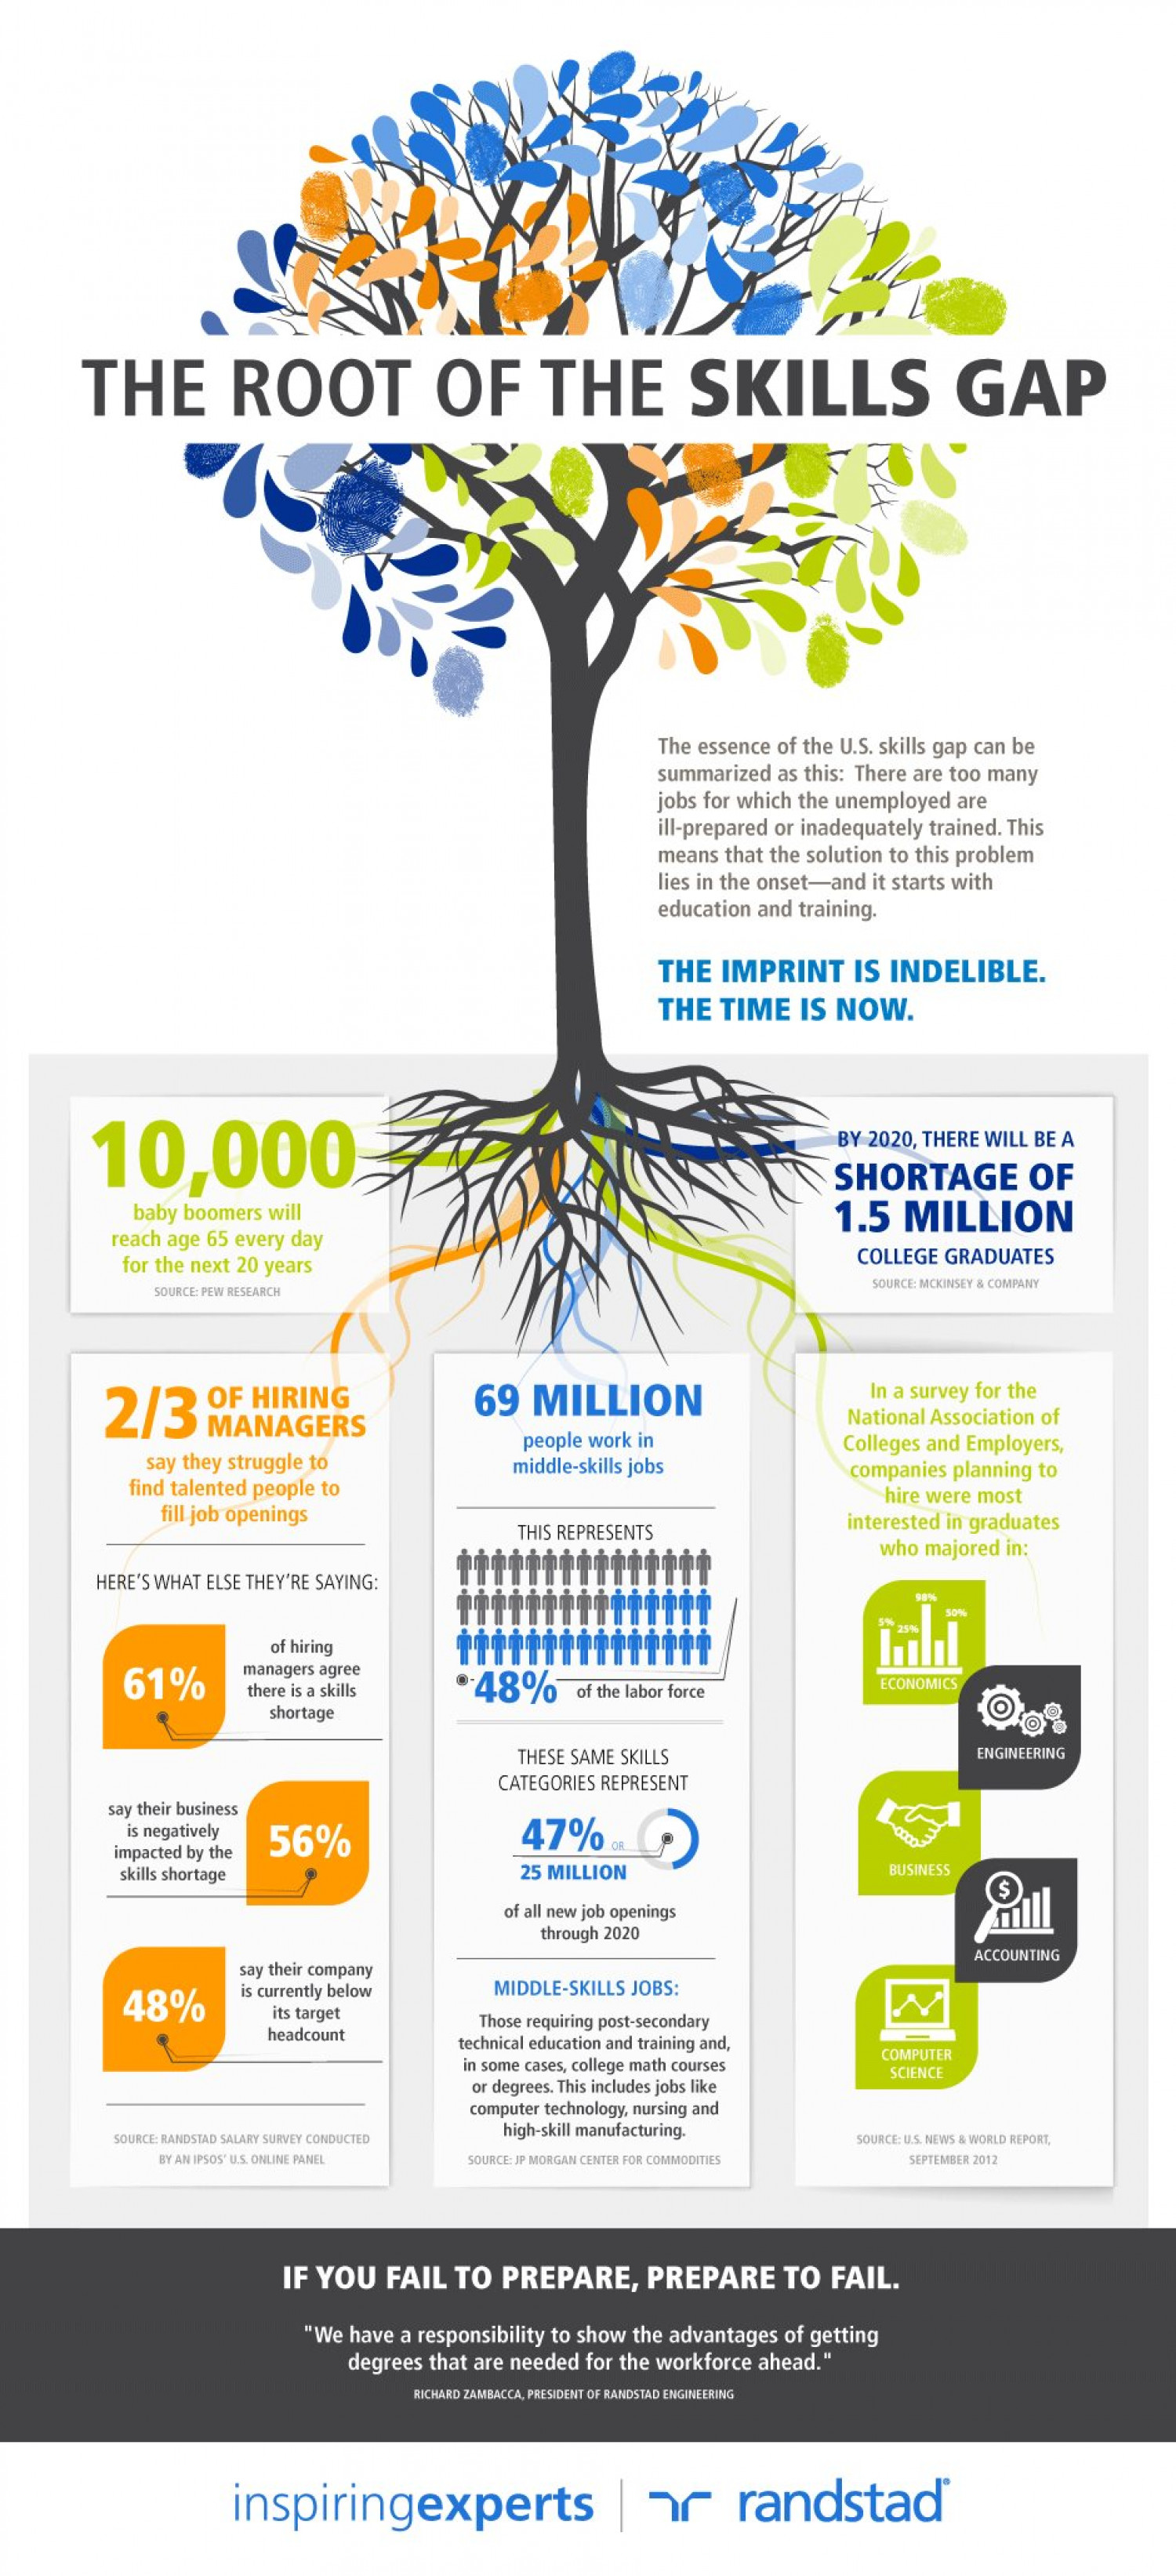 The Root of the Skills Gap Infographic